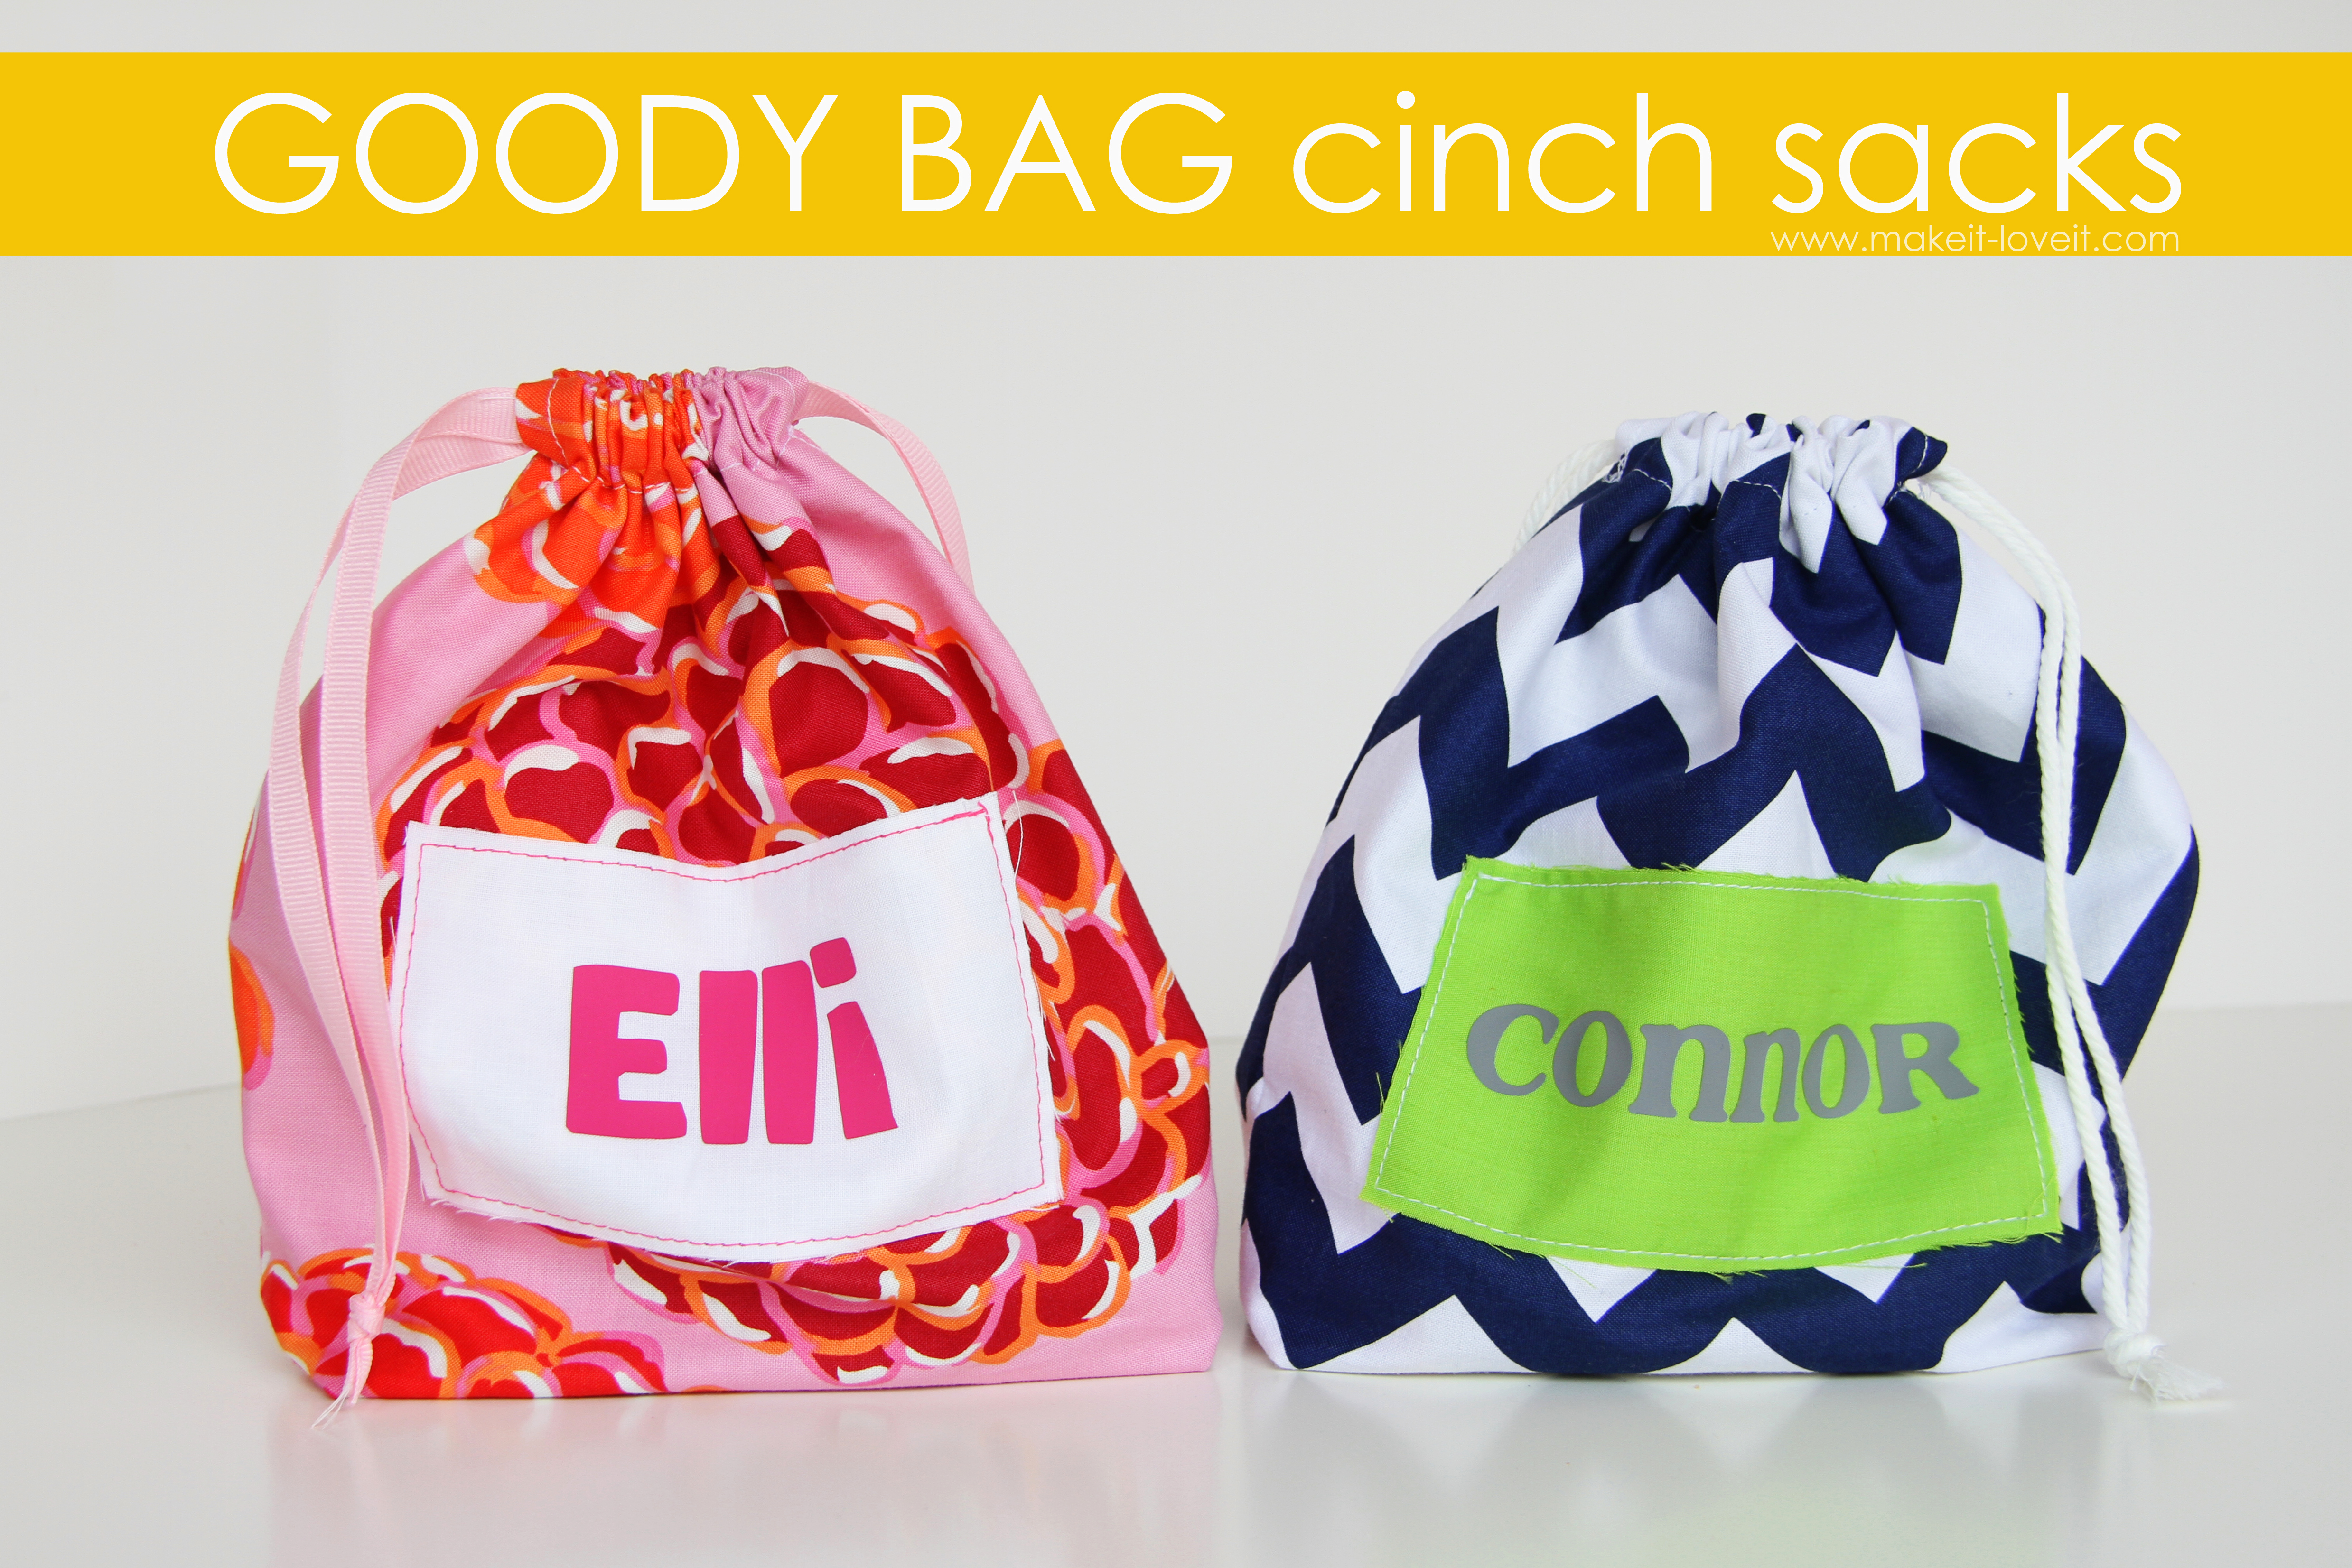 goody bag cinch sacks hey use up some of that scrap